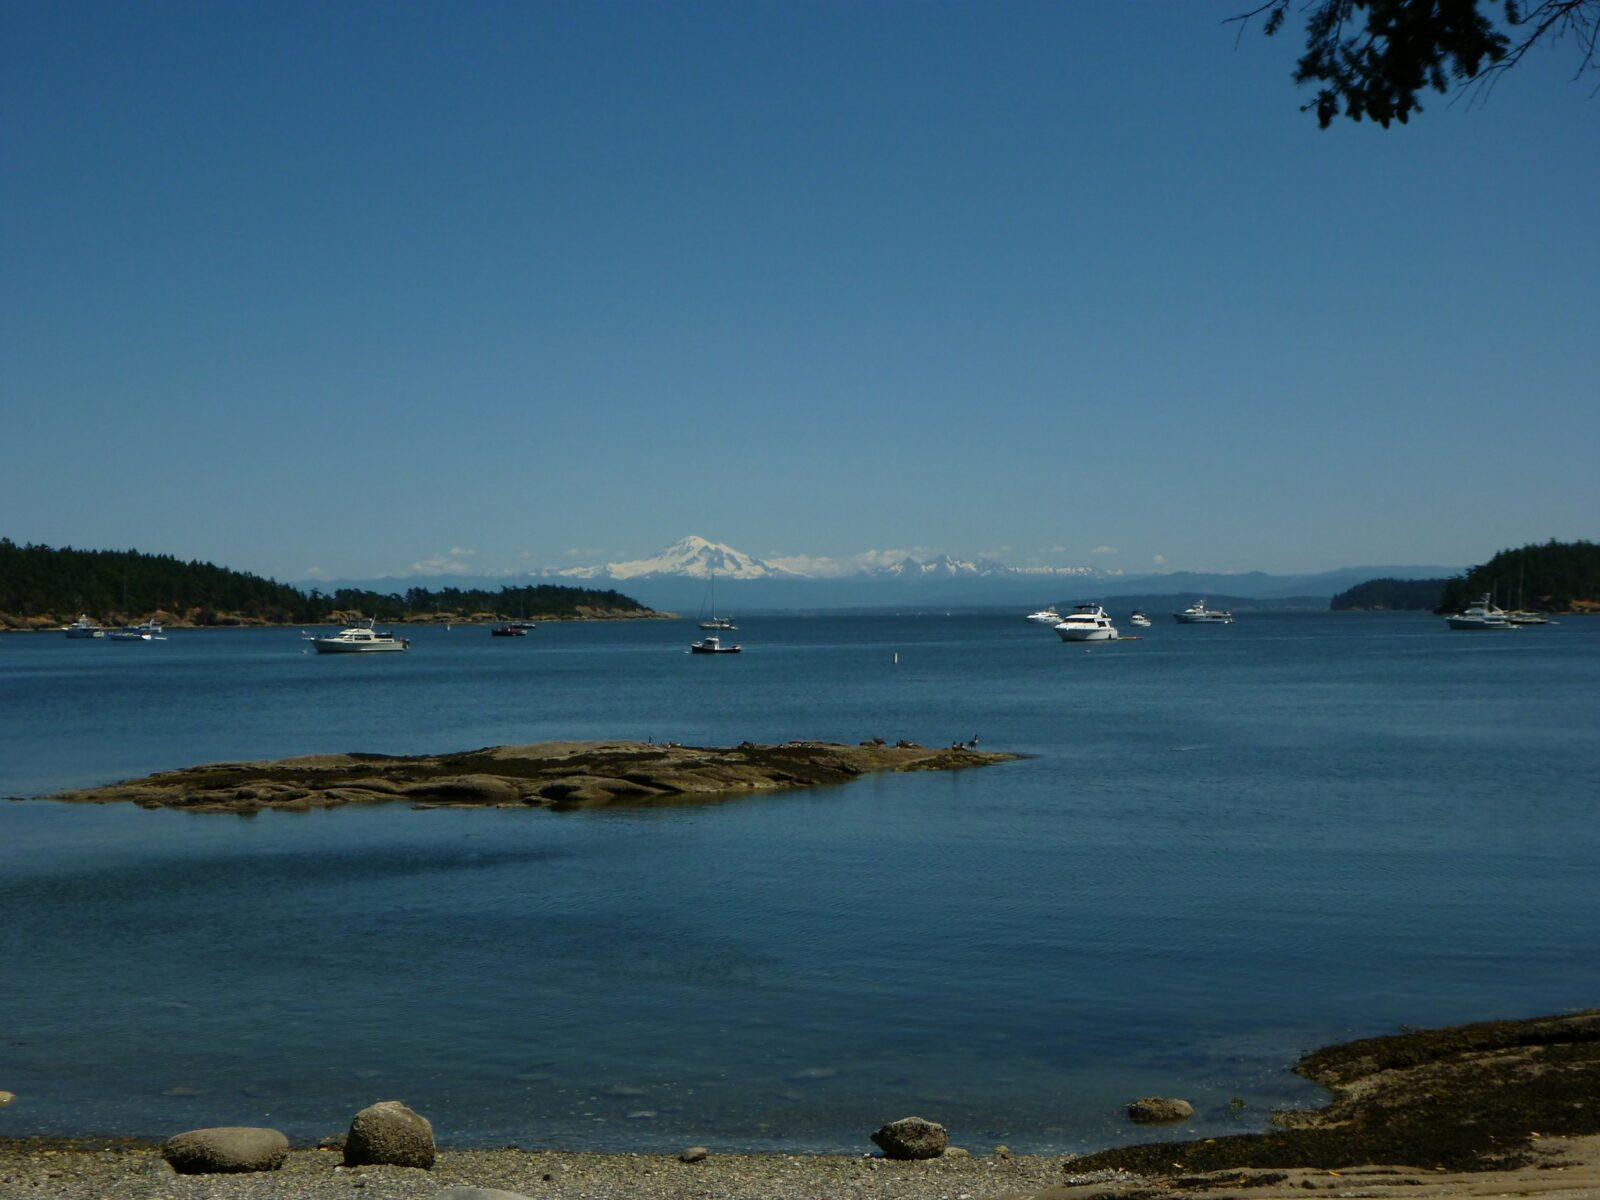 Echo Bay on Sucia Island with many pleasure boats tied to mooring buoys. There are rocky bits around and in the bay and it is surrounded by forest. In the distance is Mt Baker, a high snowcapped mountain